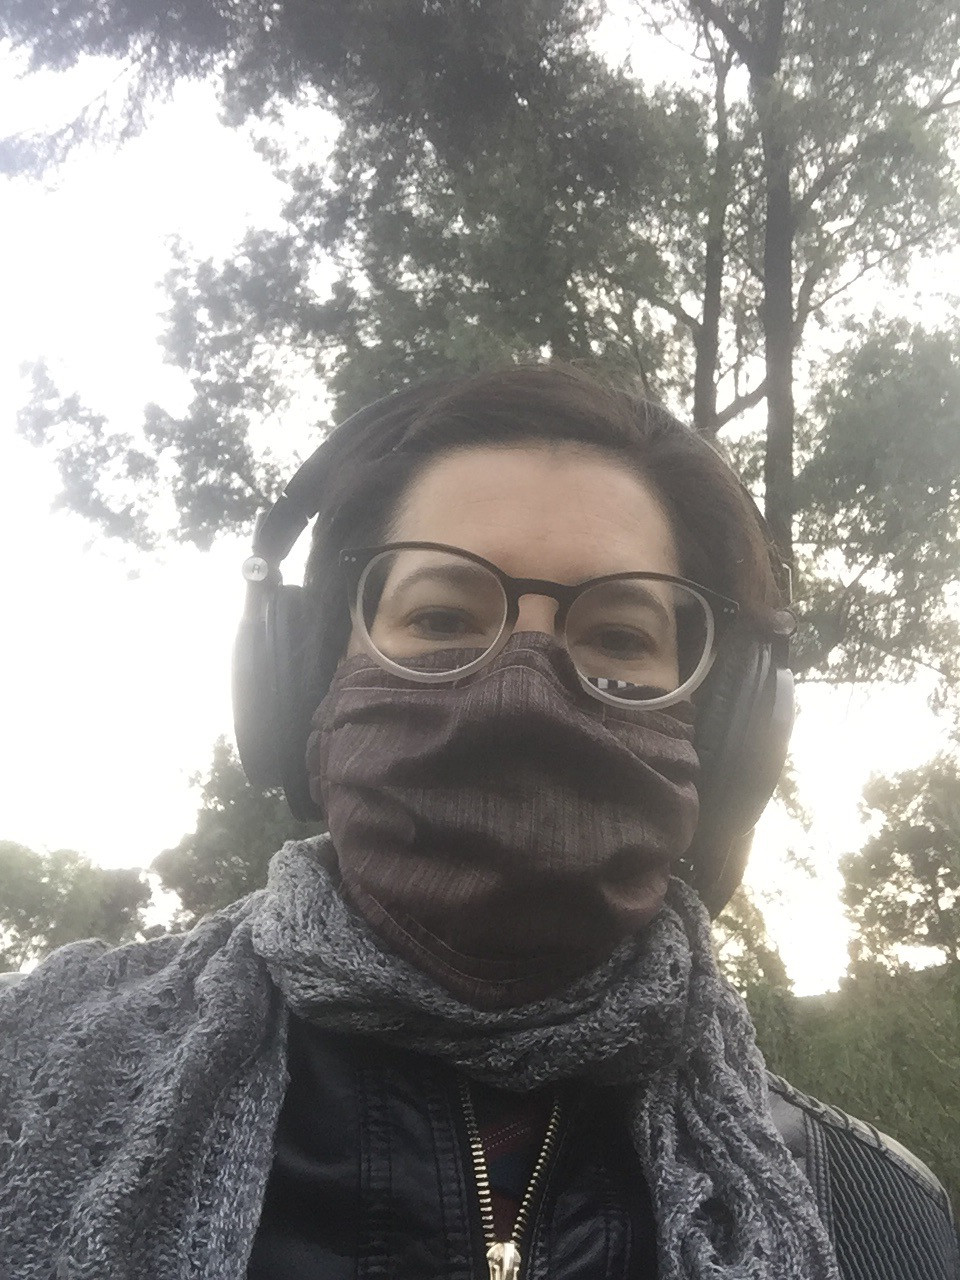 A woman wearing glasses, headphones and a pandemic mask poses in front of a tree